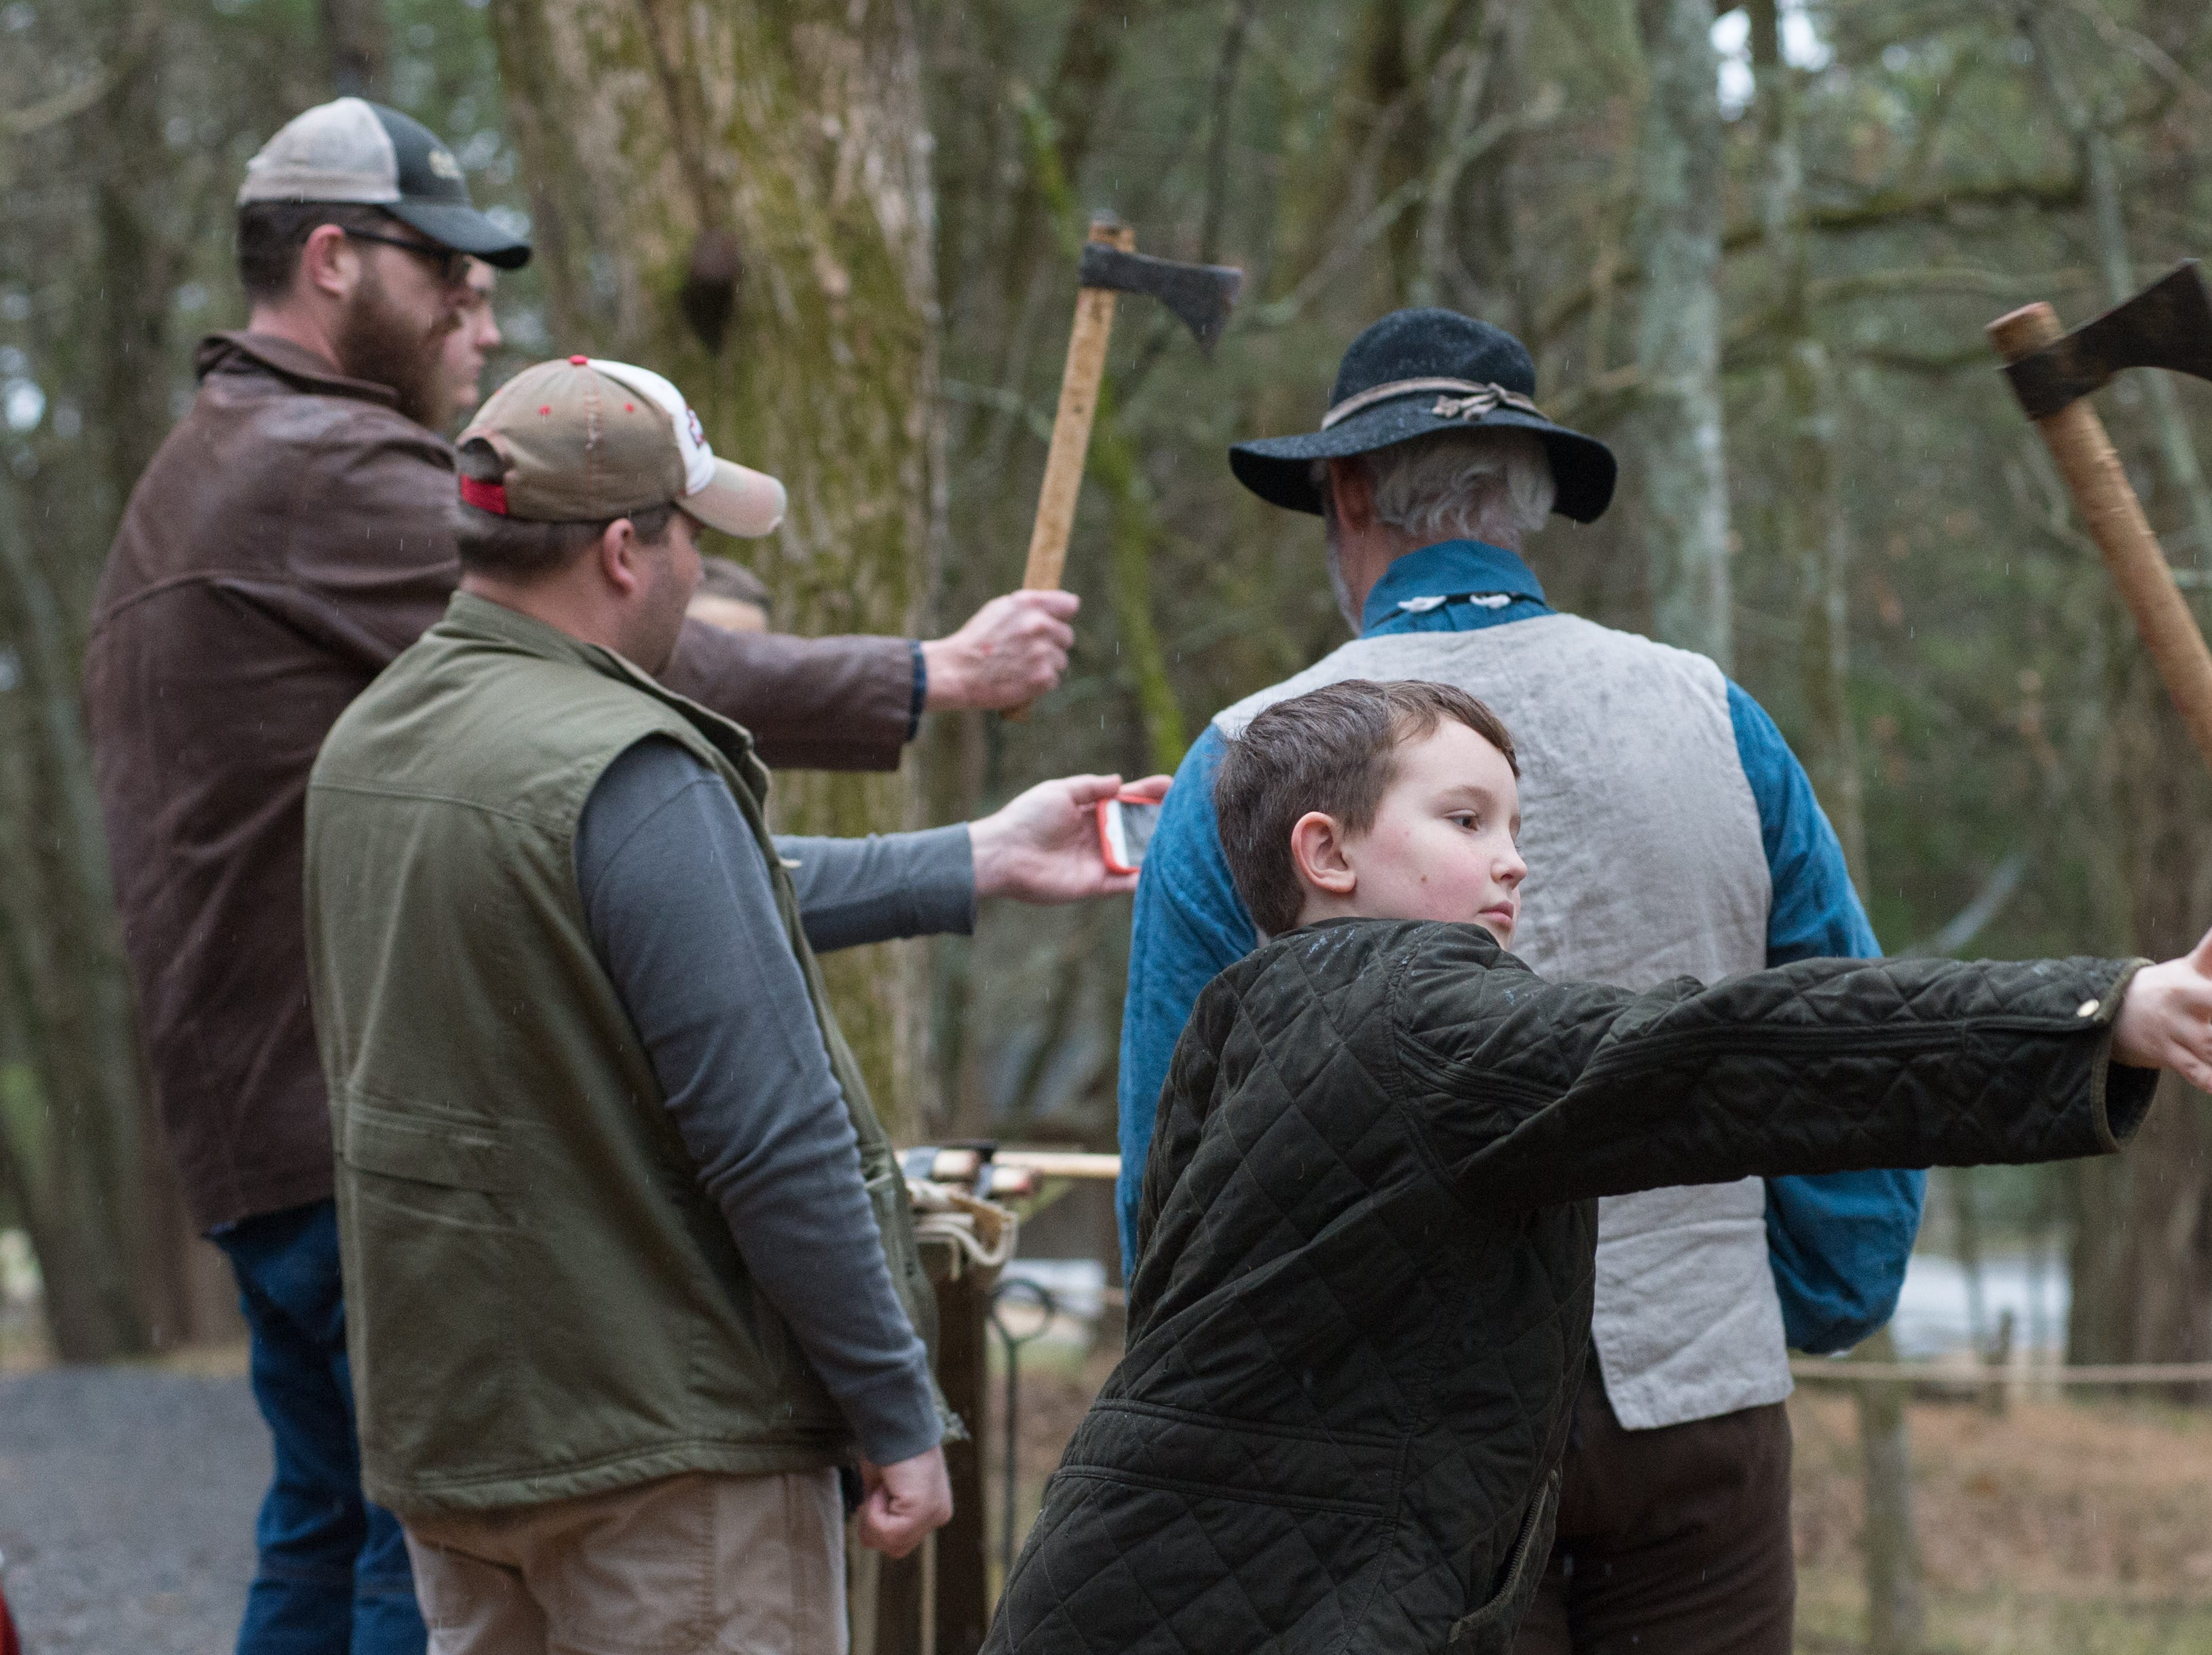 Enoch Cooper participates in a Tomahawk Throwing for Beginners event hosted by Middle Tennessee History Coalition at Bledsoe Creek State Park on Saturday, Jan. 12.